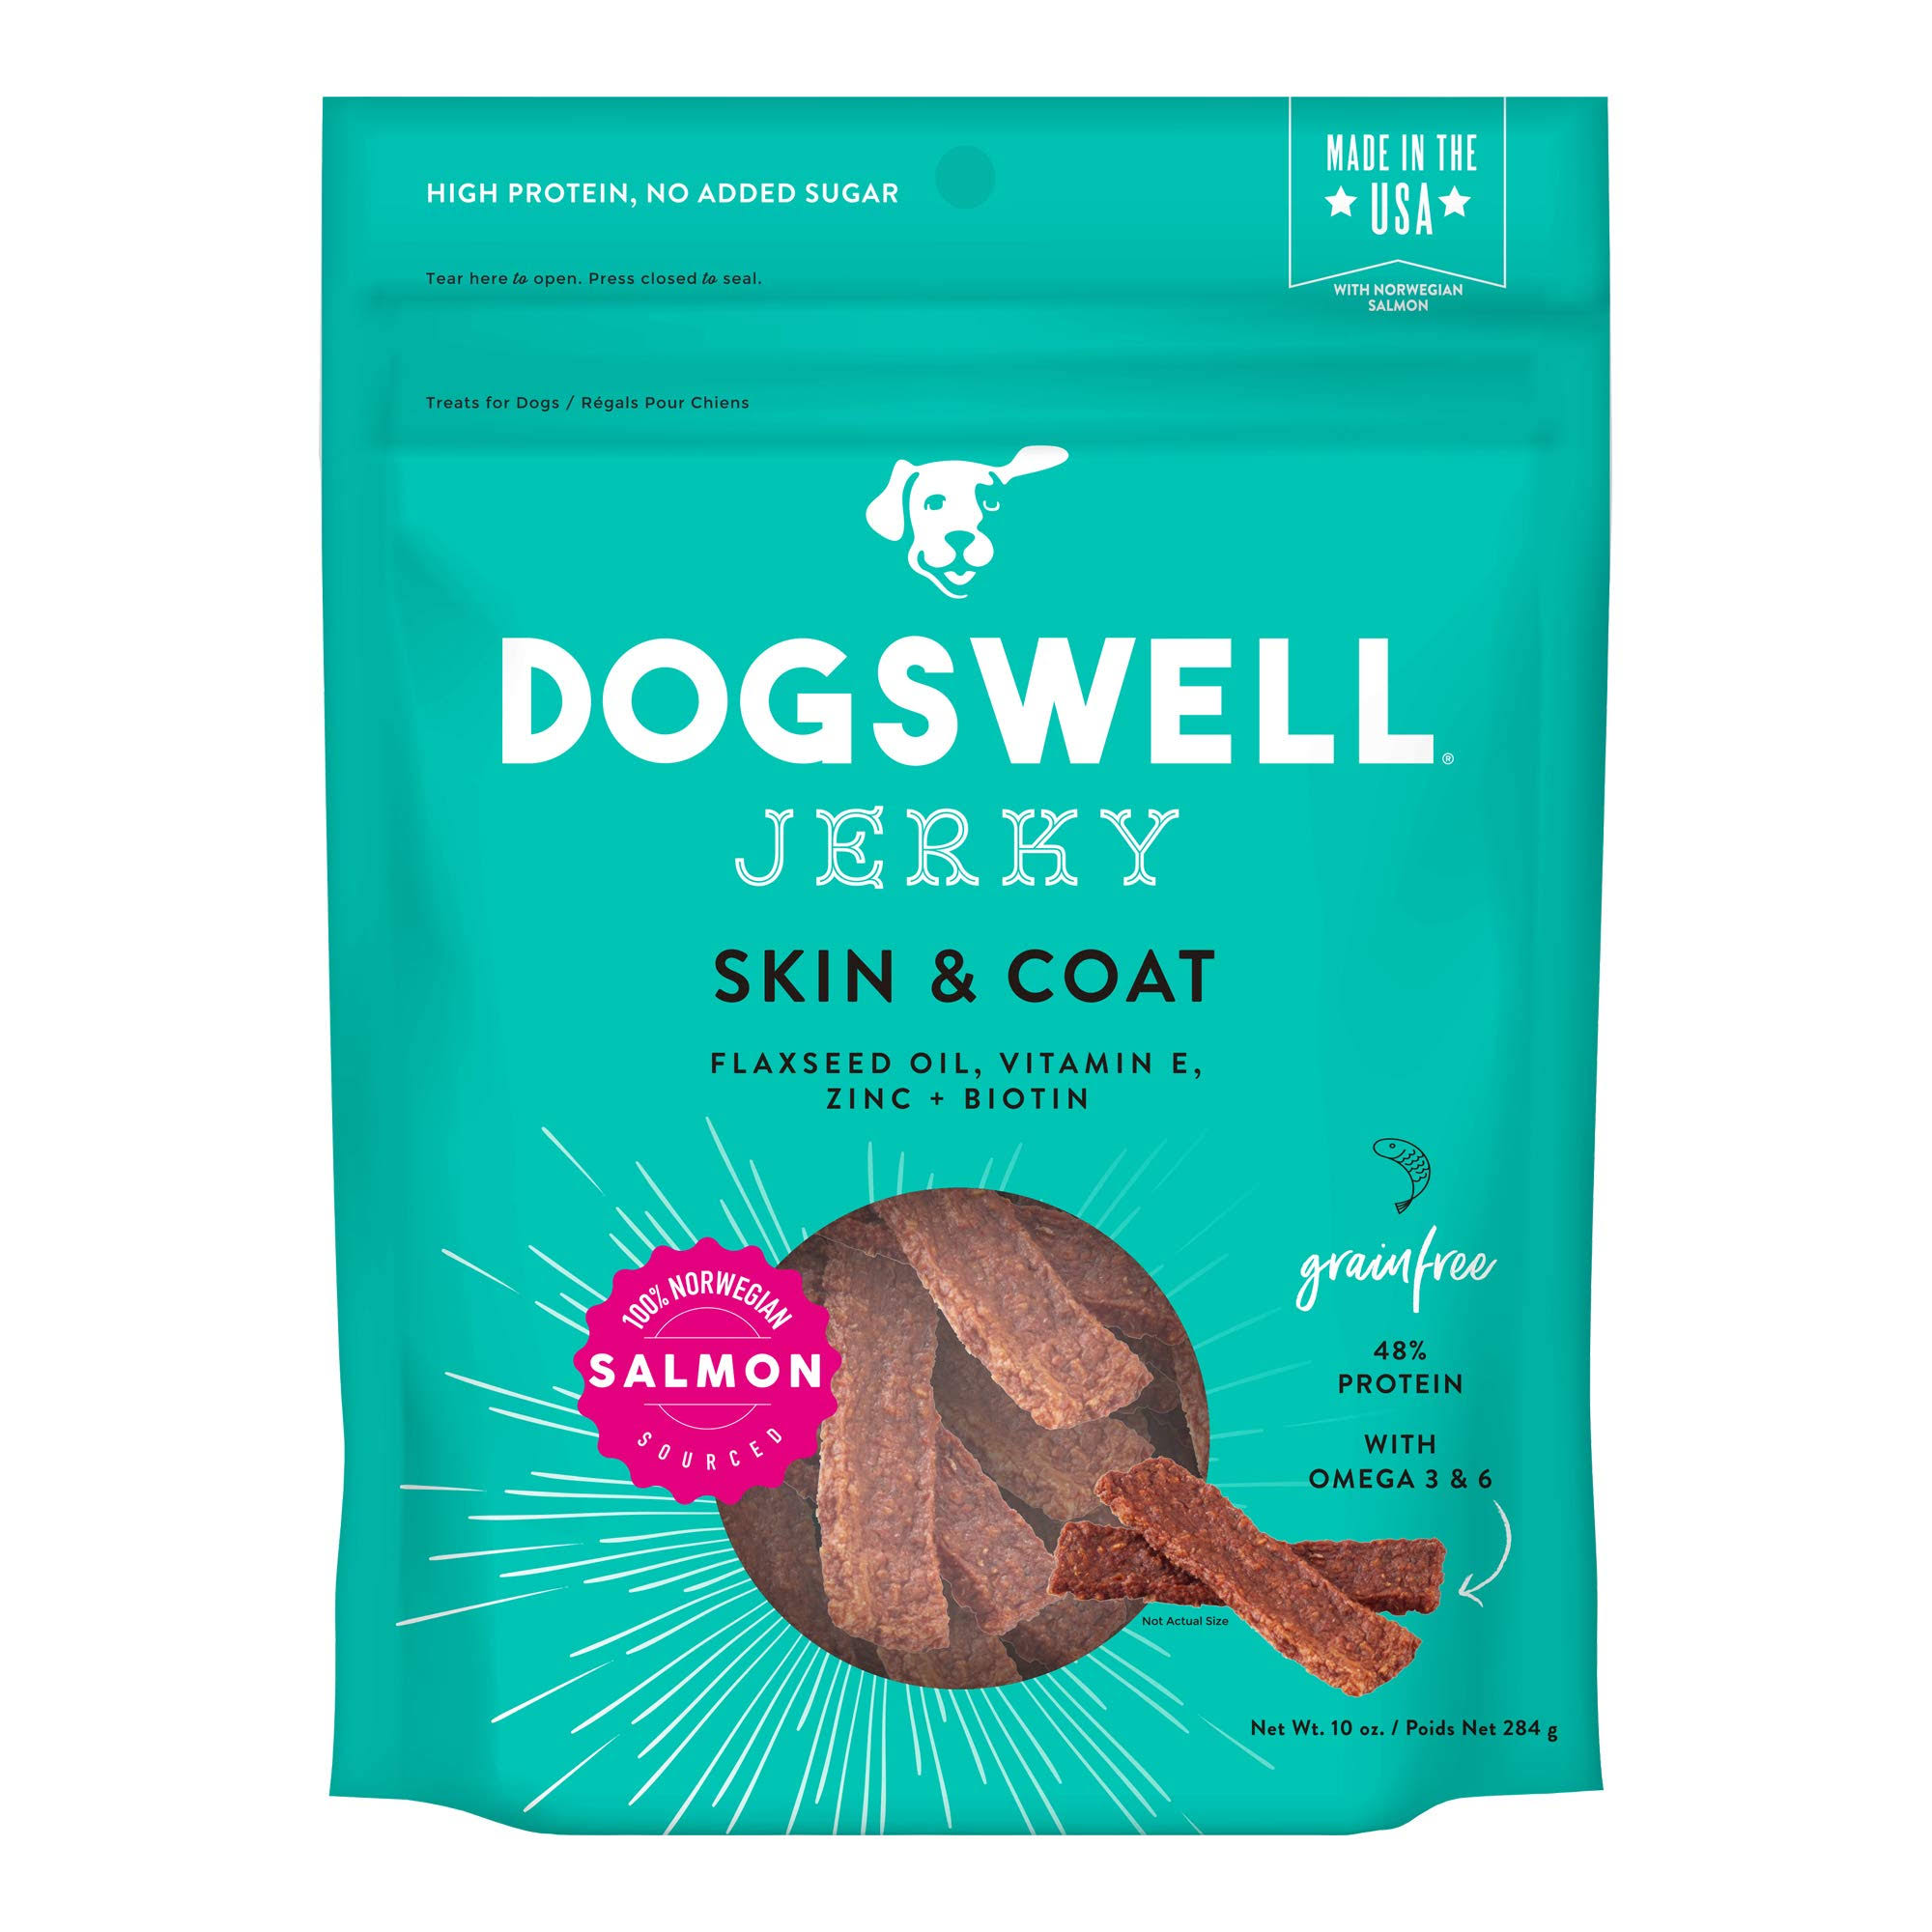 Dogswell Jerky Skin & Coat Dog Treats - Salmon - 10 oz